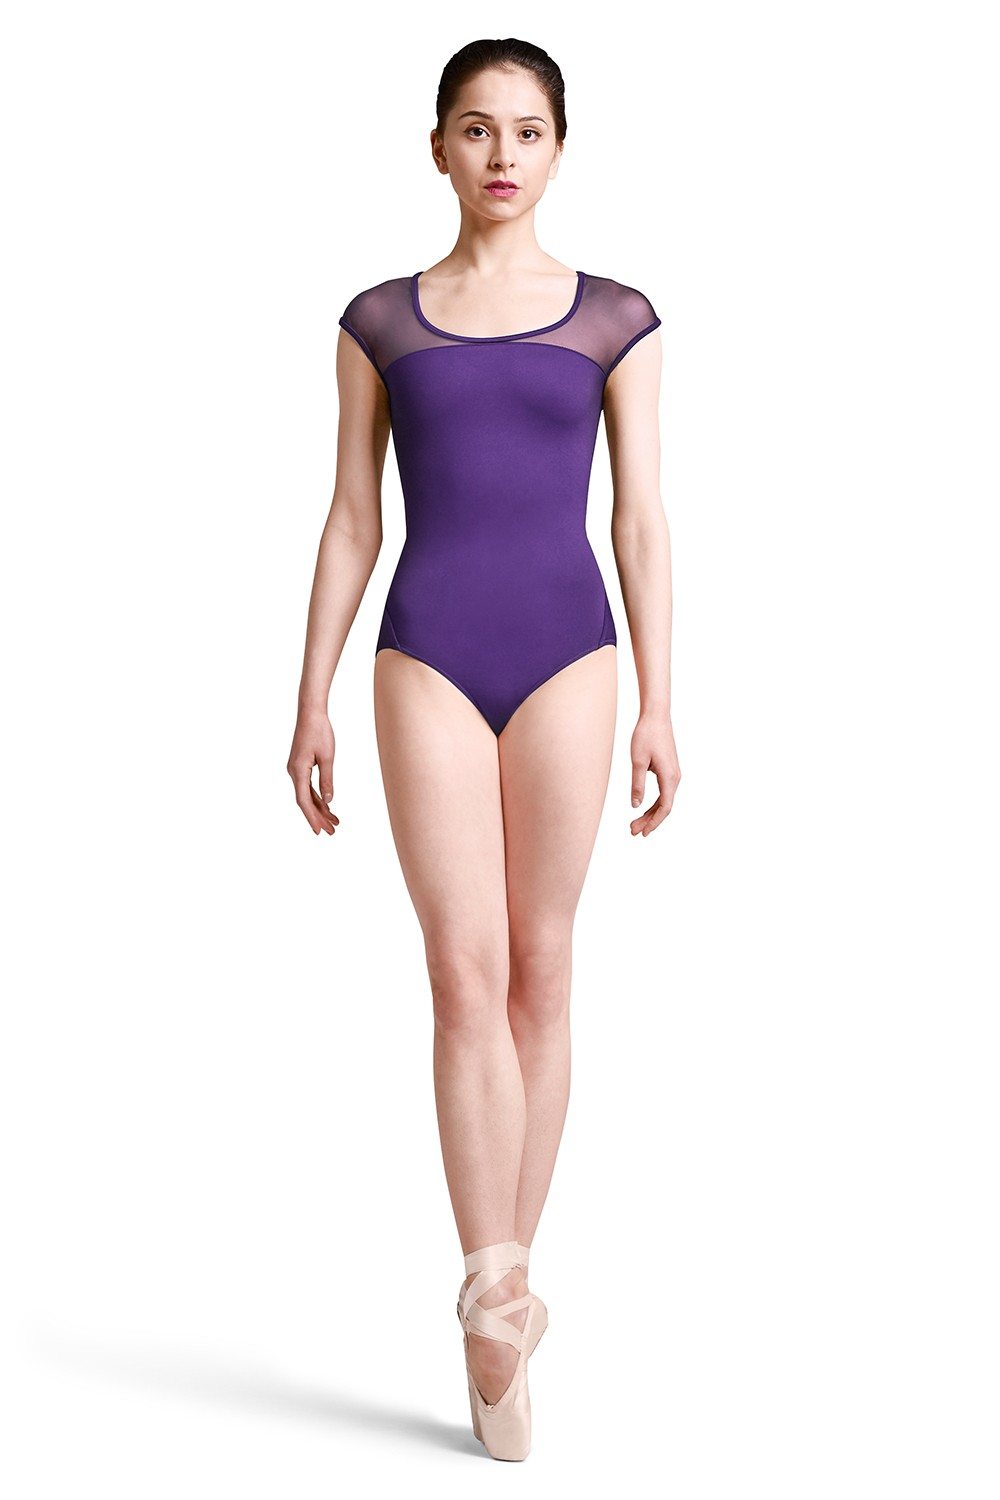 Justaucorps À Mancherons Tressé Au Dos Womens Short Sleeve Leotards